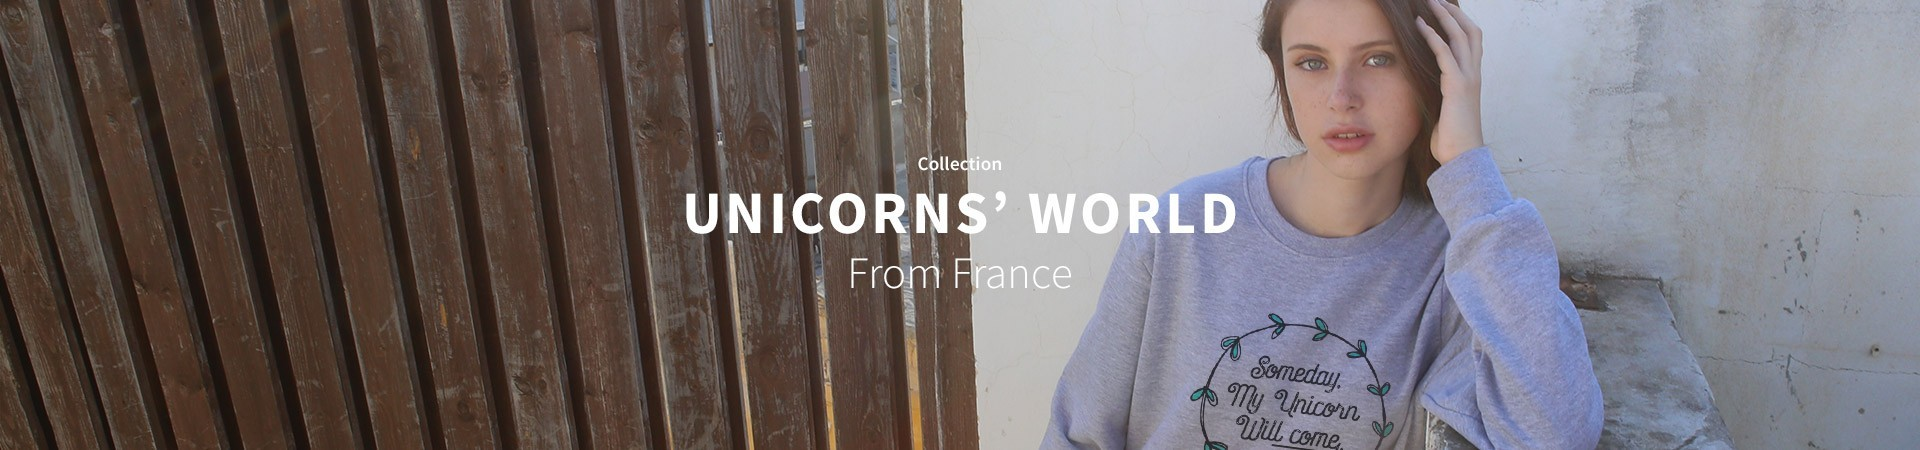 Unicorns' World